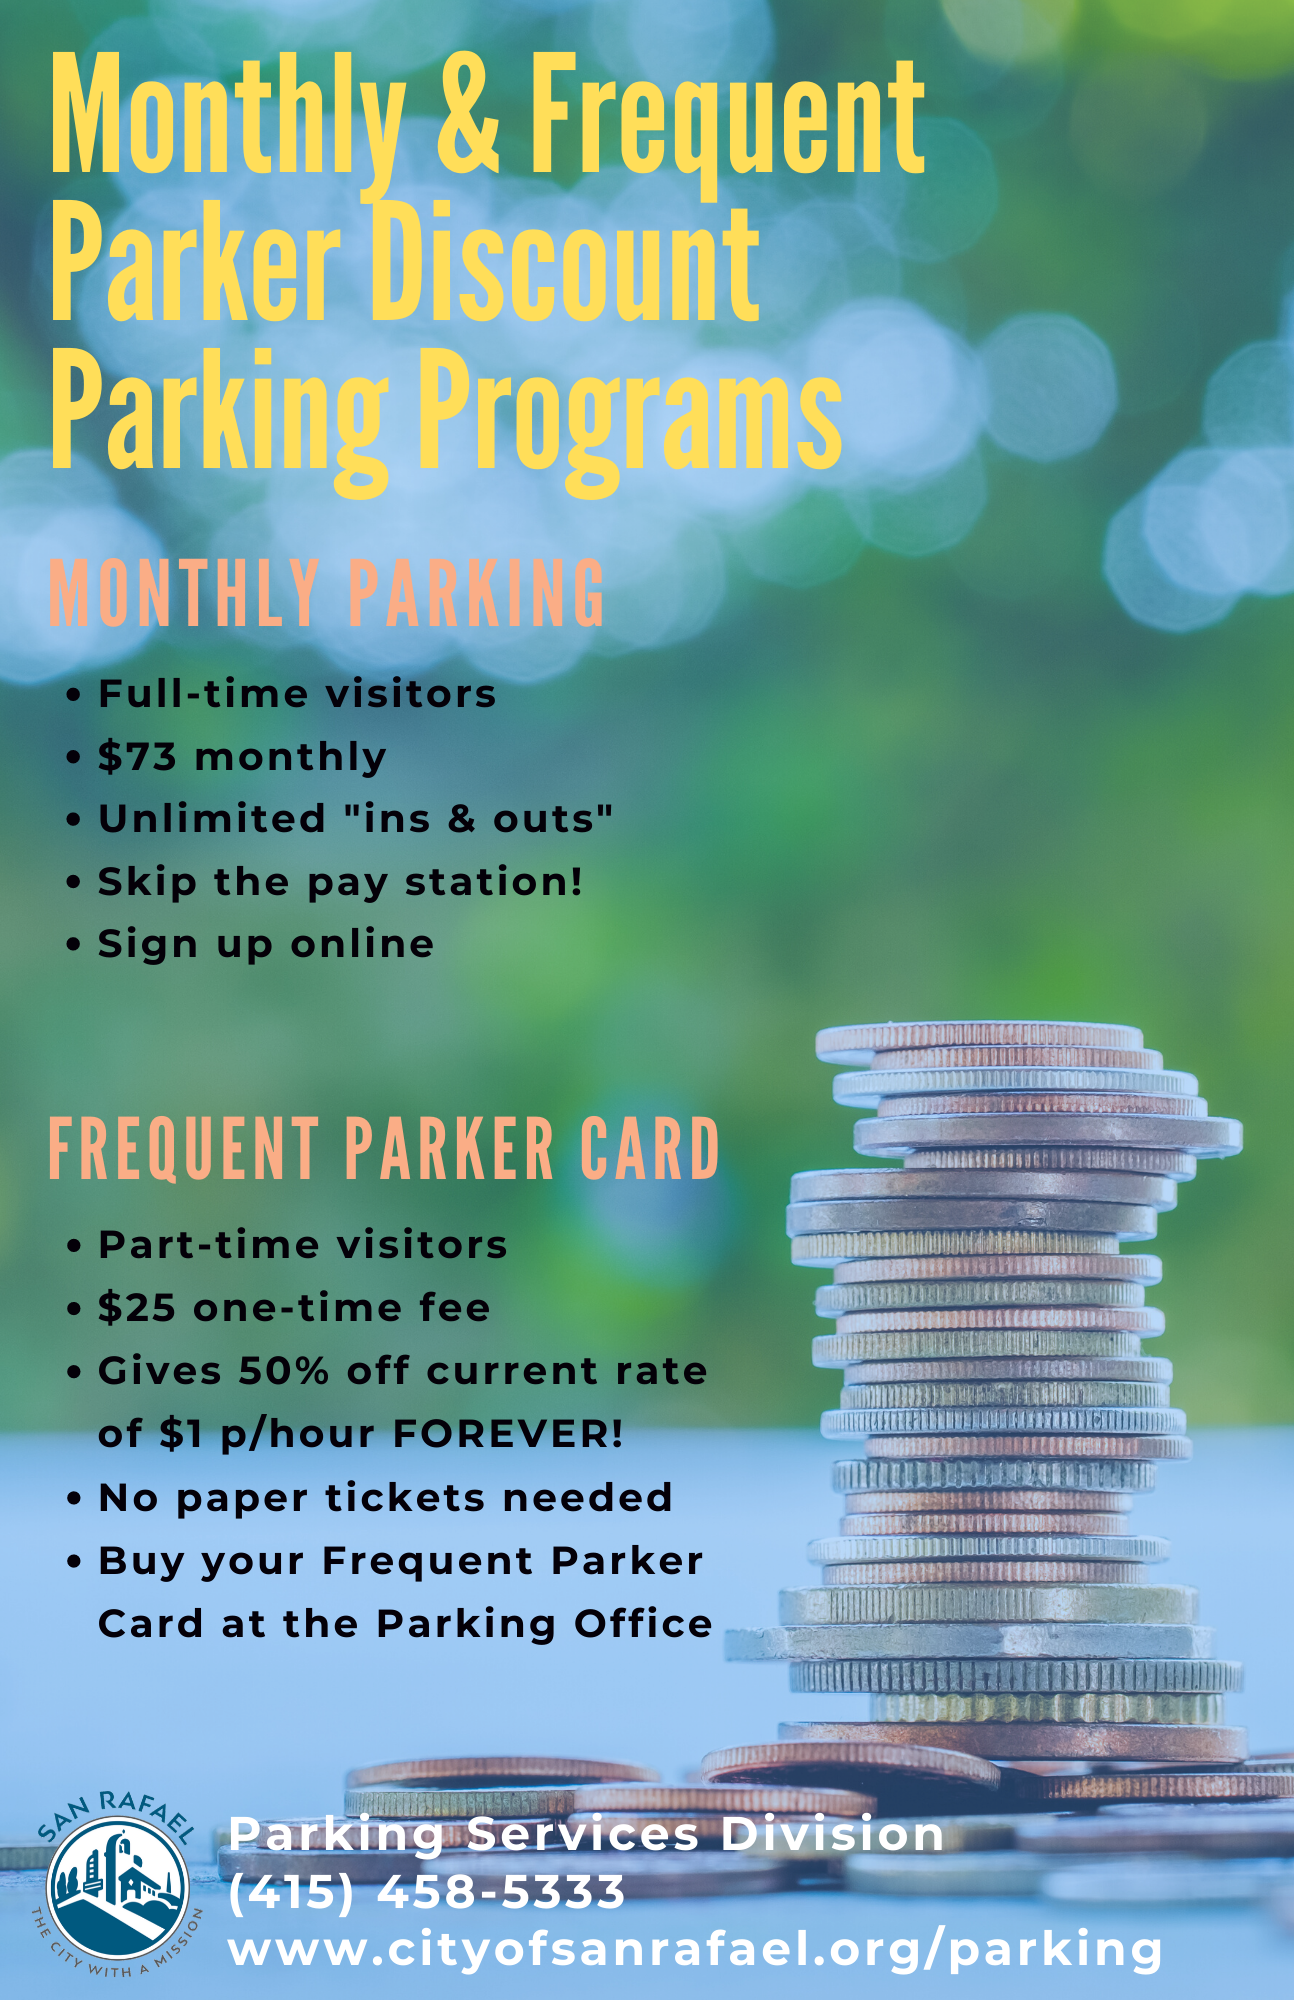 Monthly Frequent Parker Discounted Parking Programs Poster Apr 2020